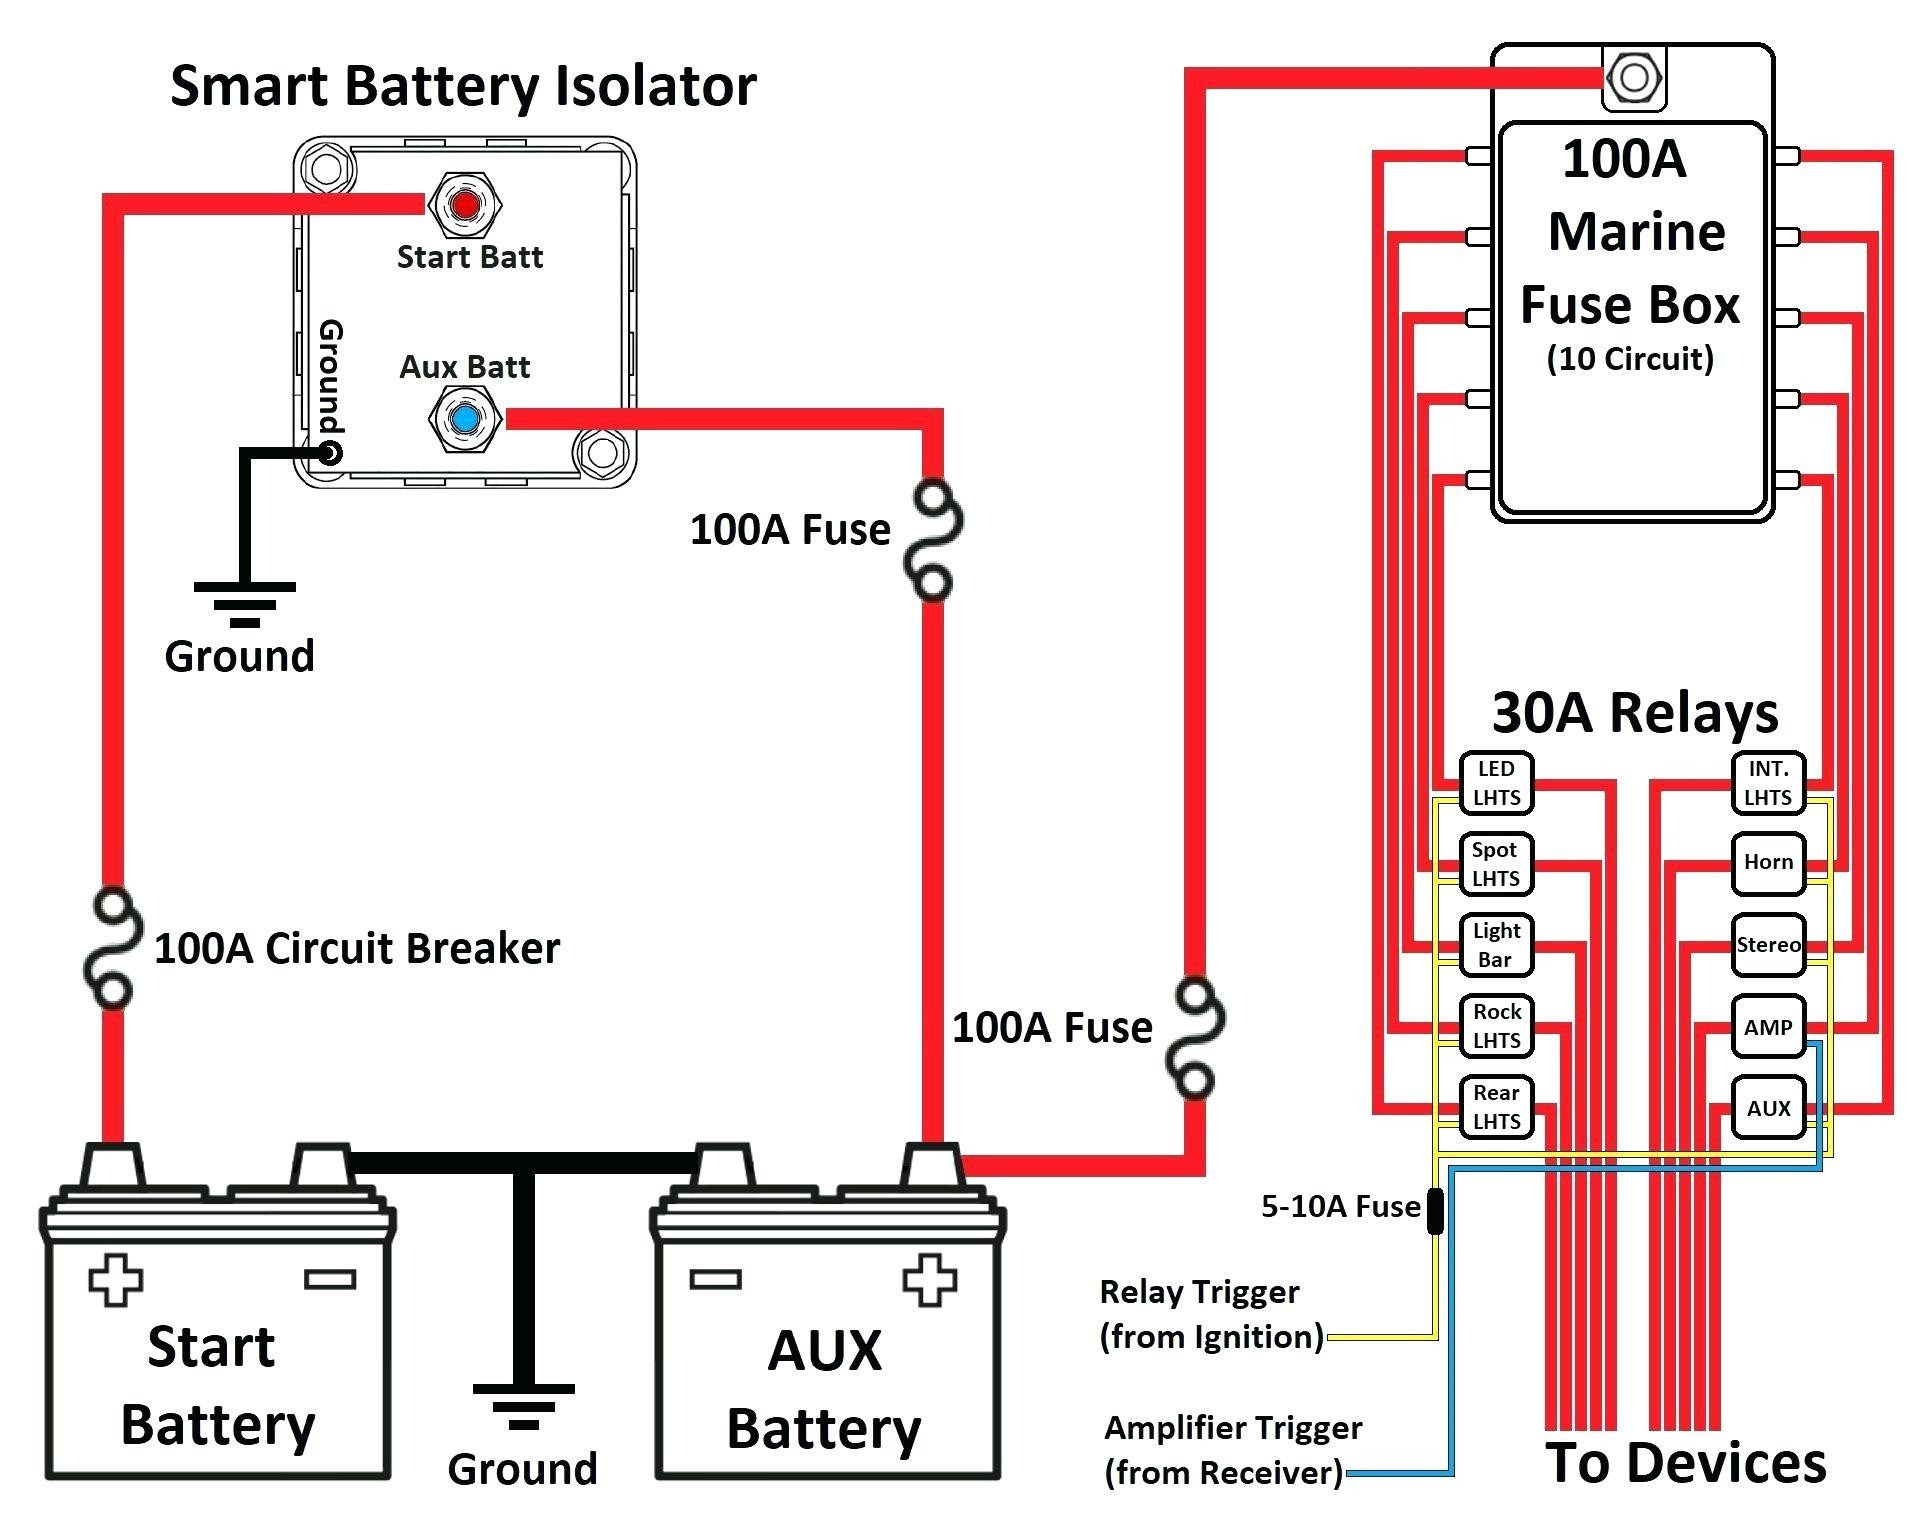 24 Volt Wiring Diagram For Trolling Motor Batts - Wiring Diagram Essig - 24 Volt Battery Wiring Diagram